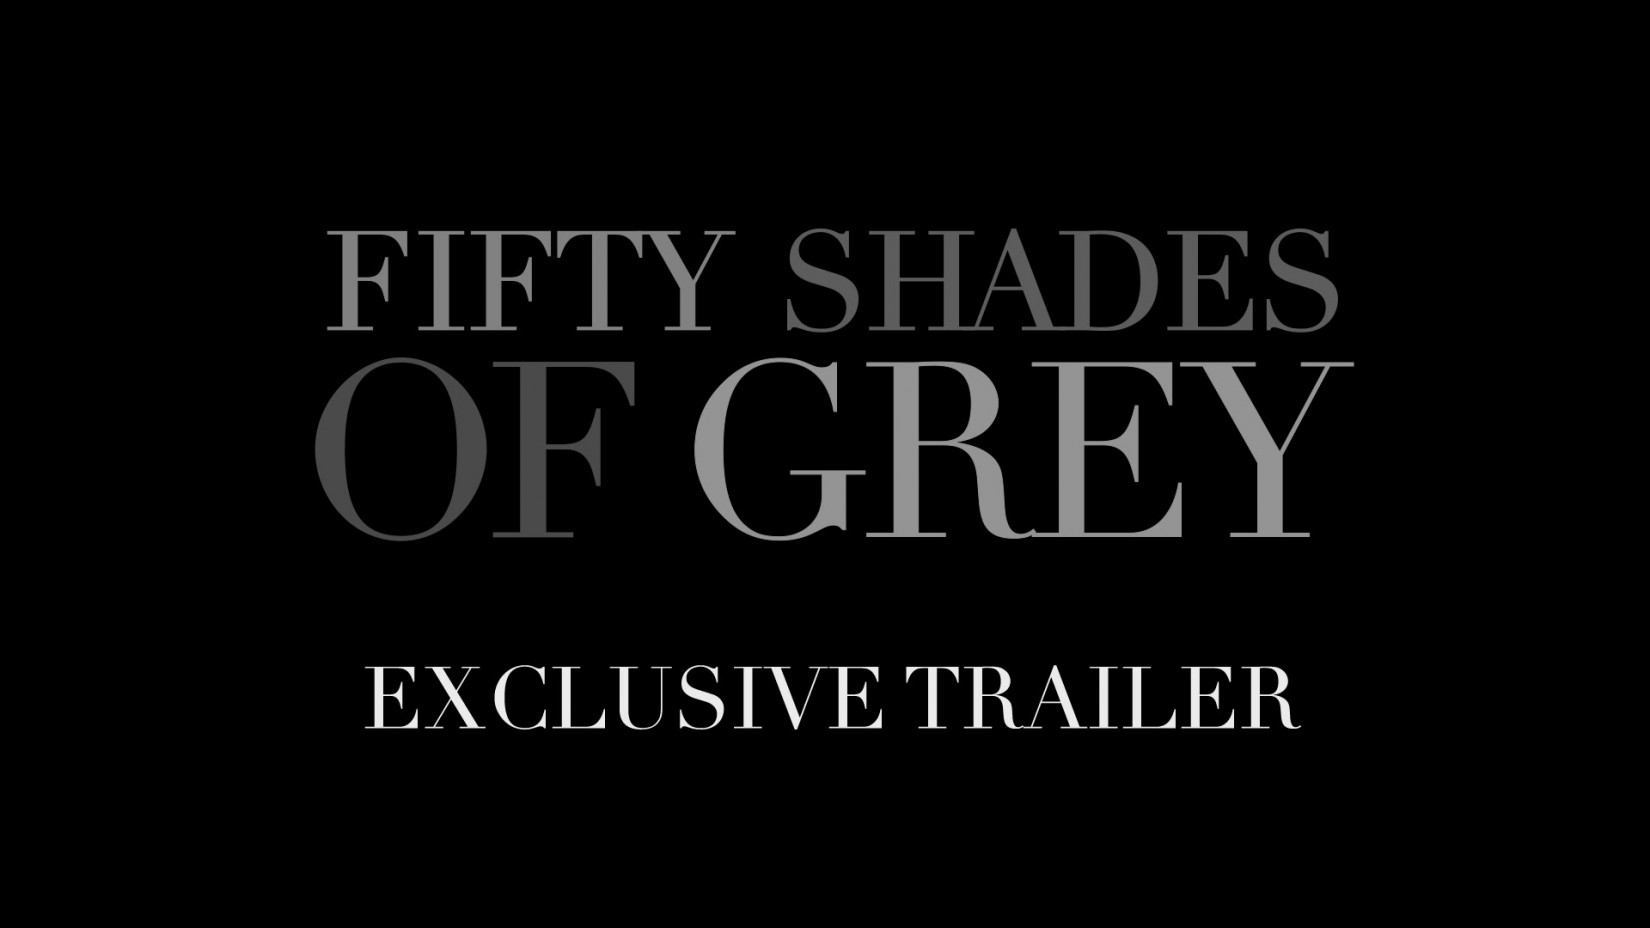 what is the font used on fifty shades of grey film trailer what is the font used on fifty shades of grey film trailer